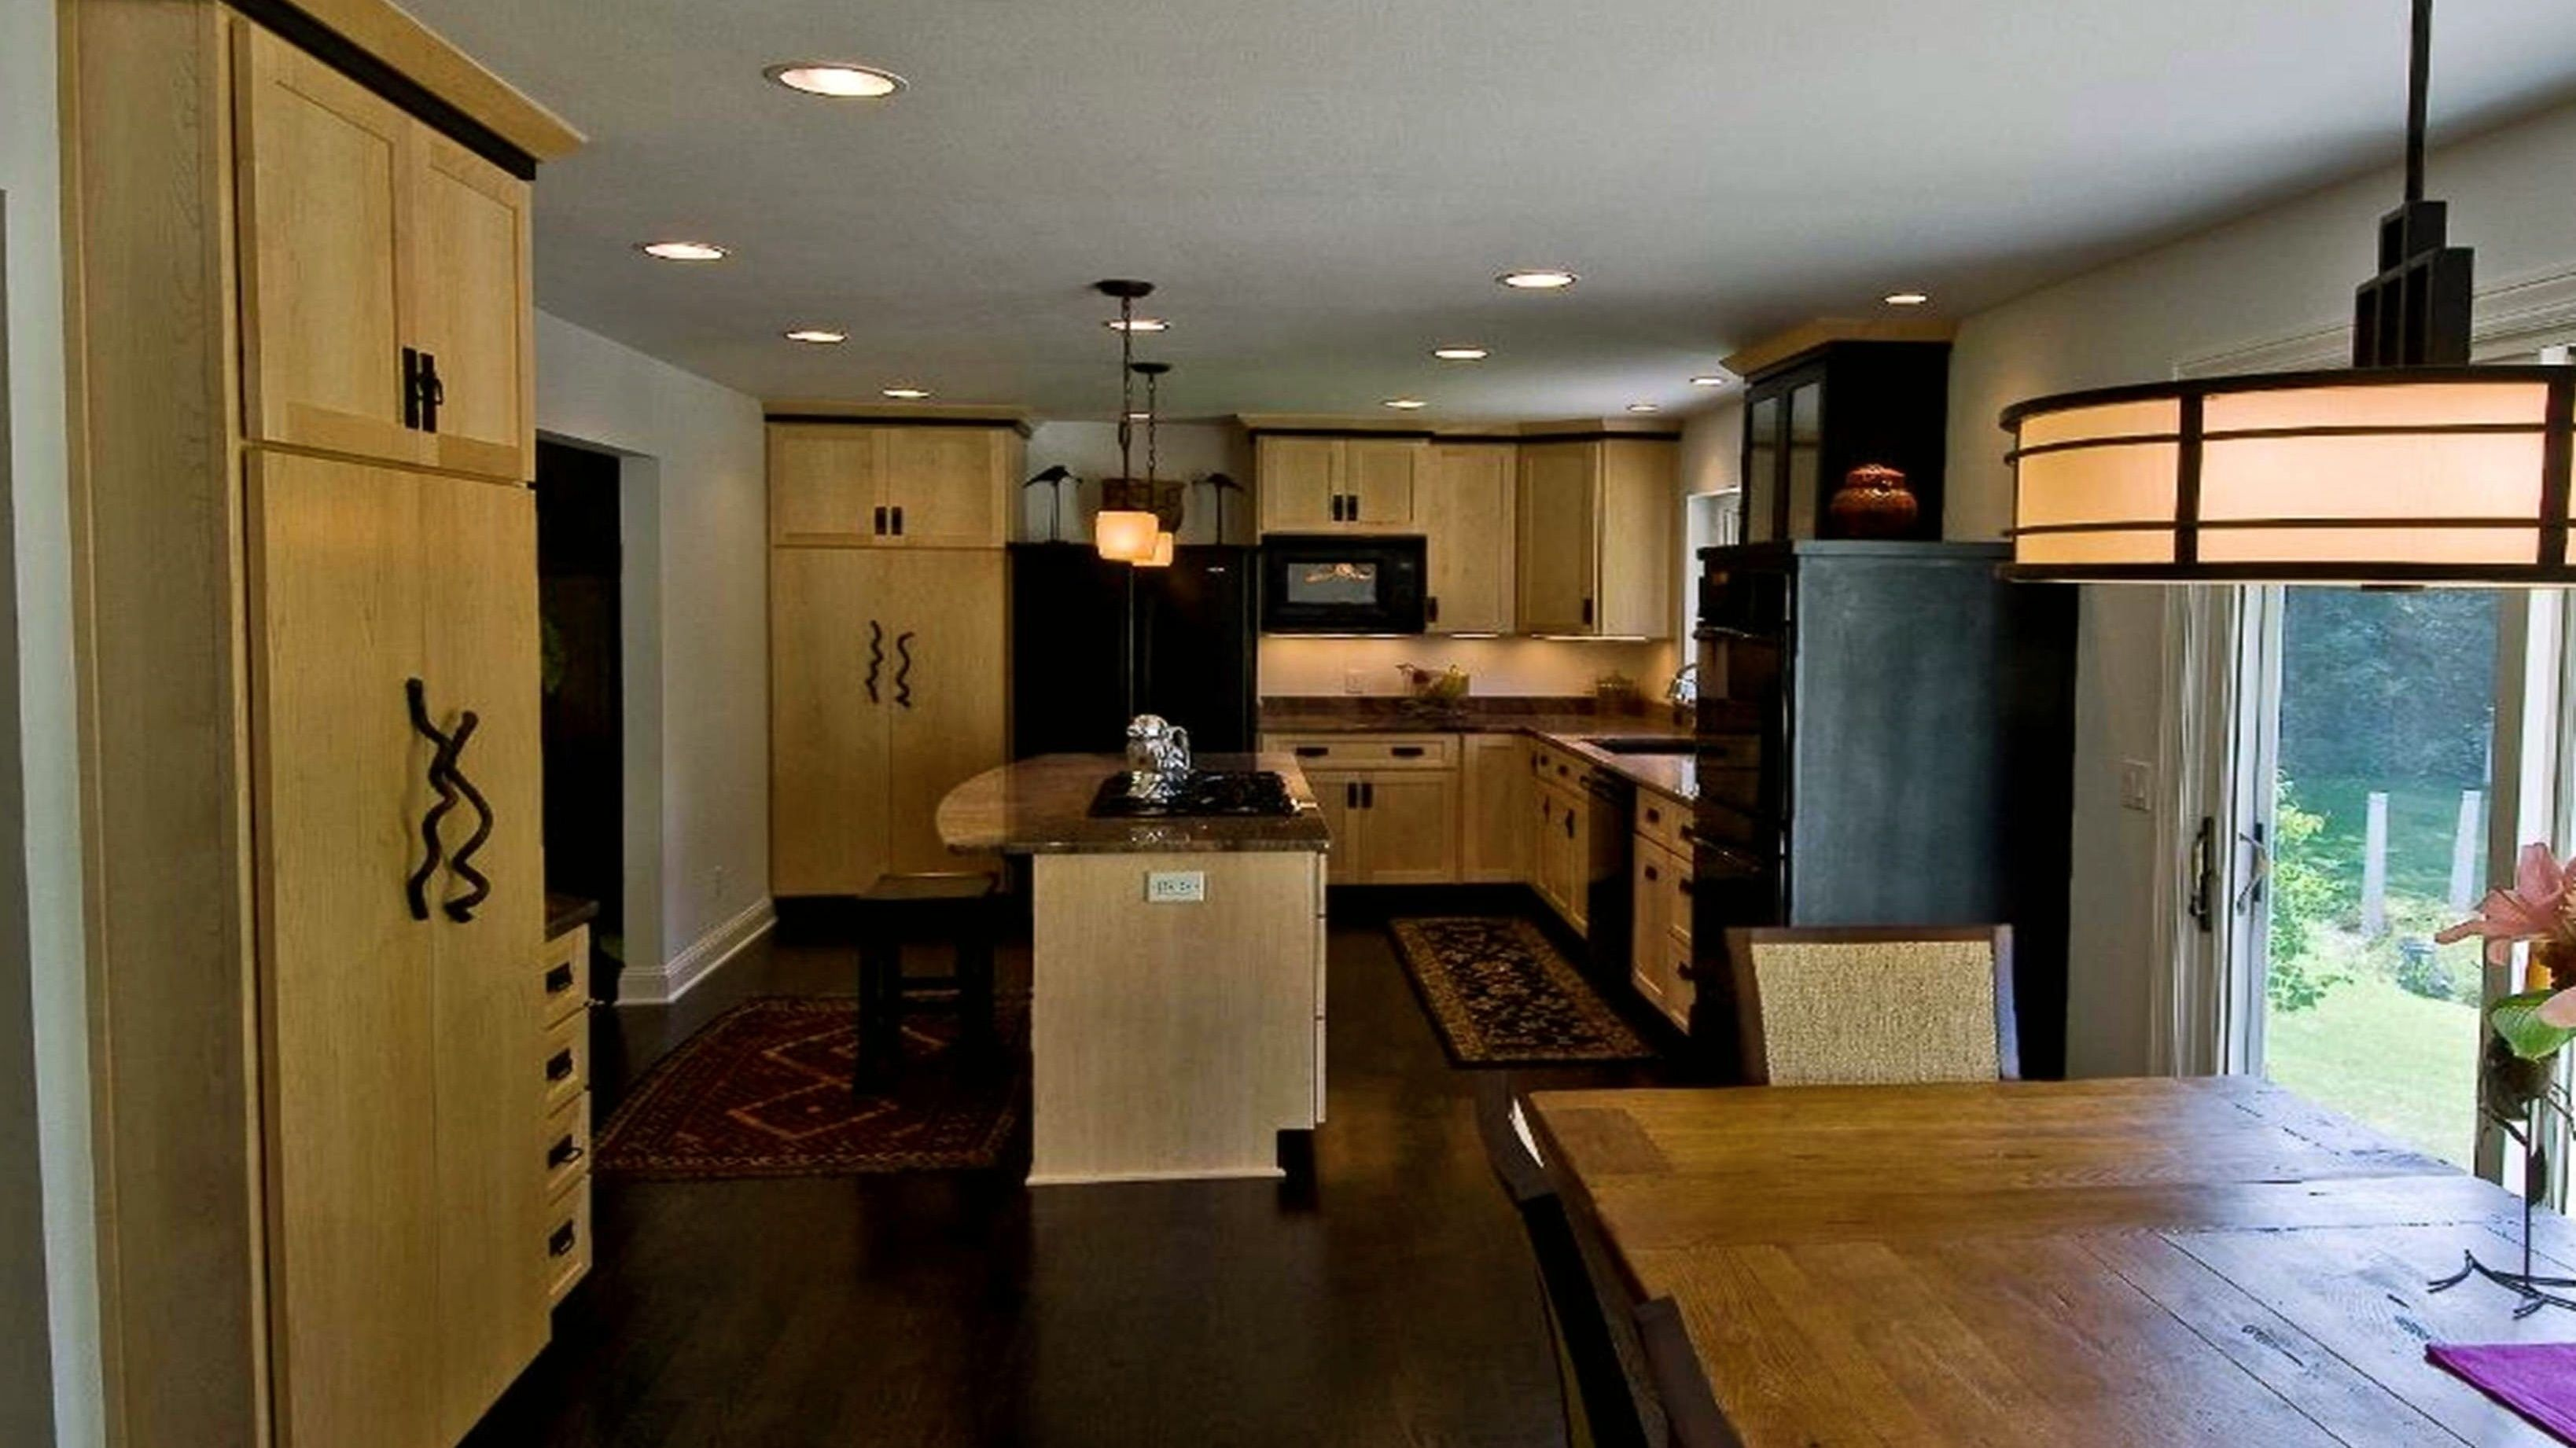 Walnut Floors Maple Cabinets Dark Countertops Soft